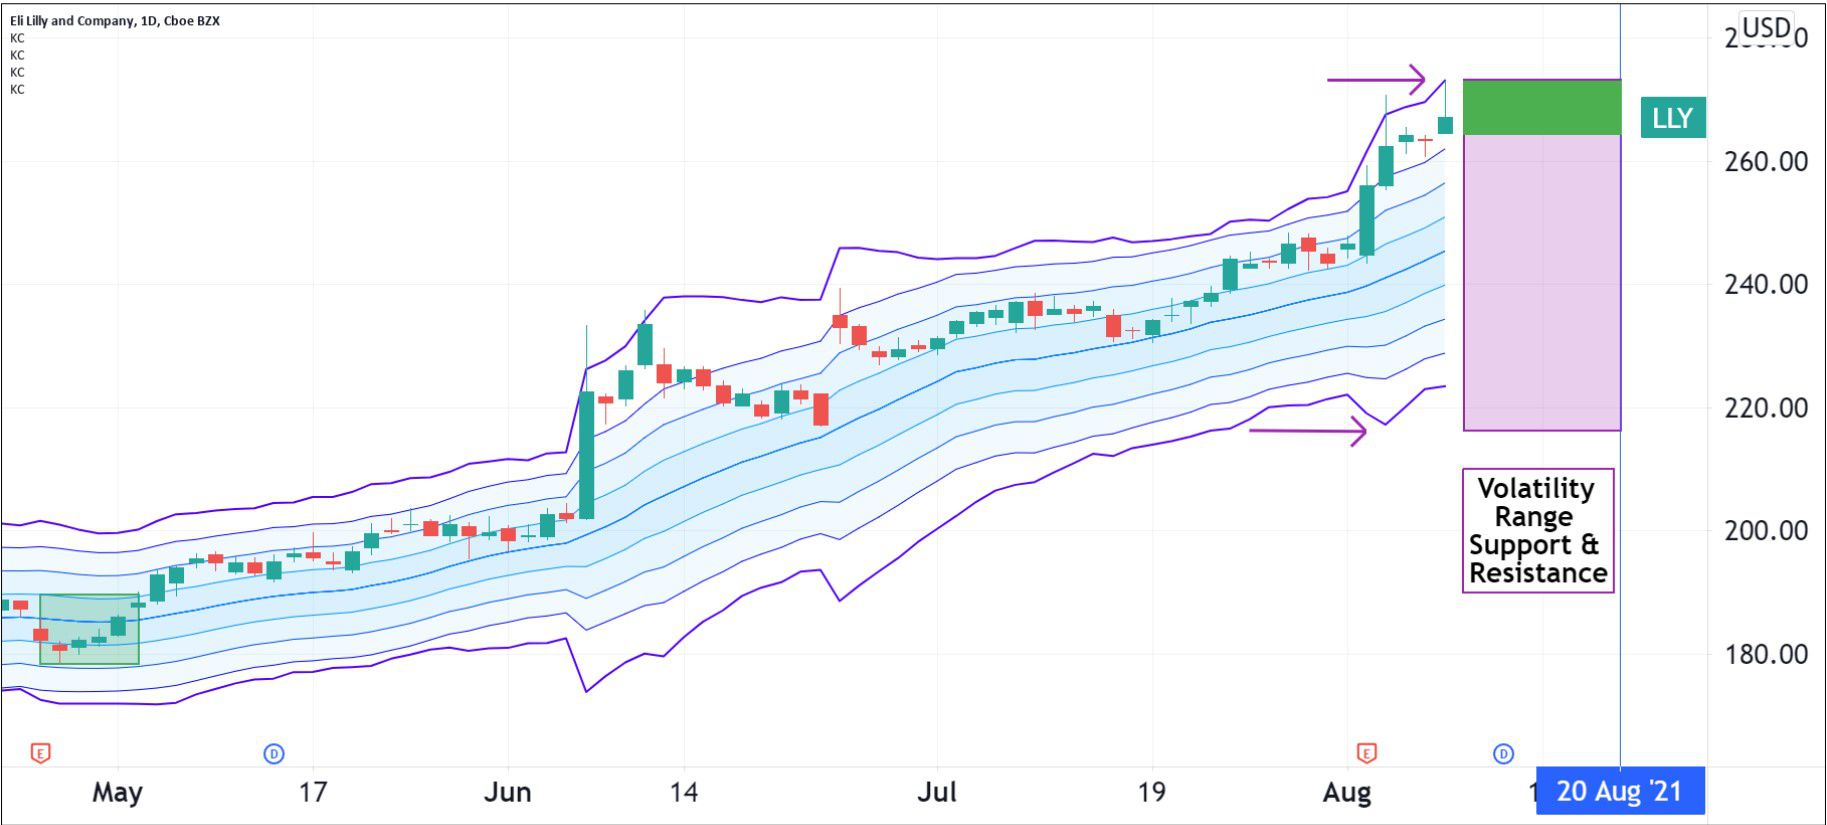 Volatility pattern for Eli Lilly and Company (LLY)